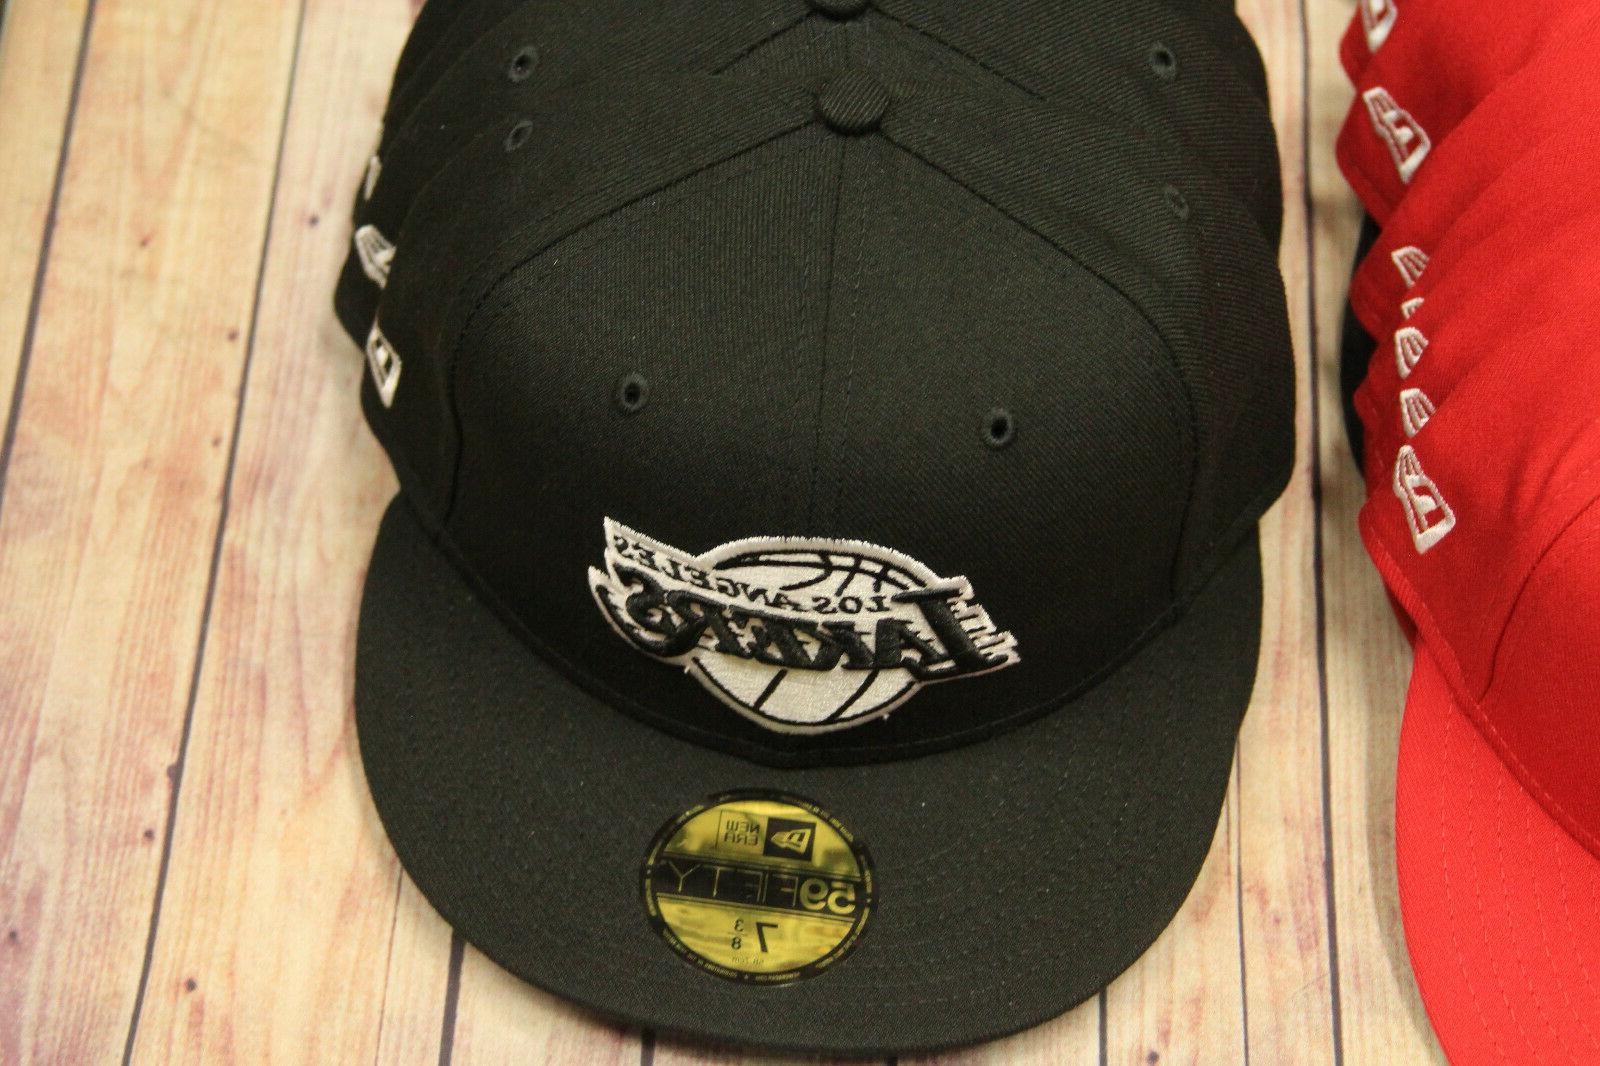 New 59Fifty Yankees Cardinals Nationals